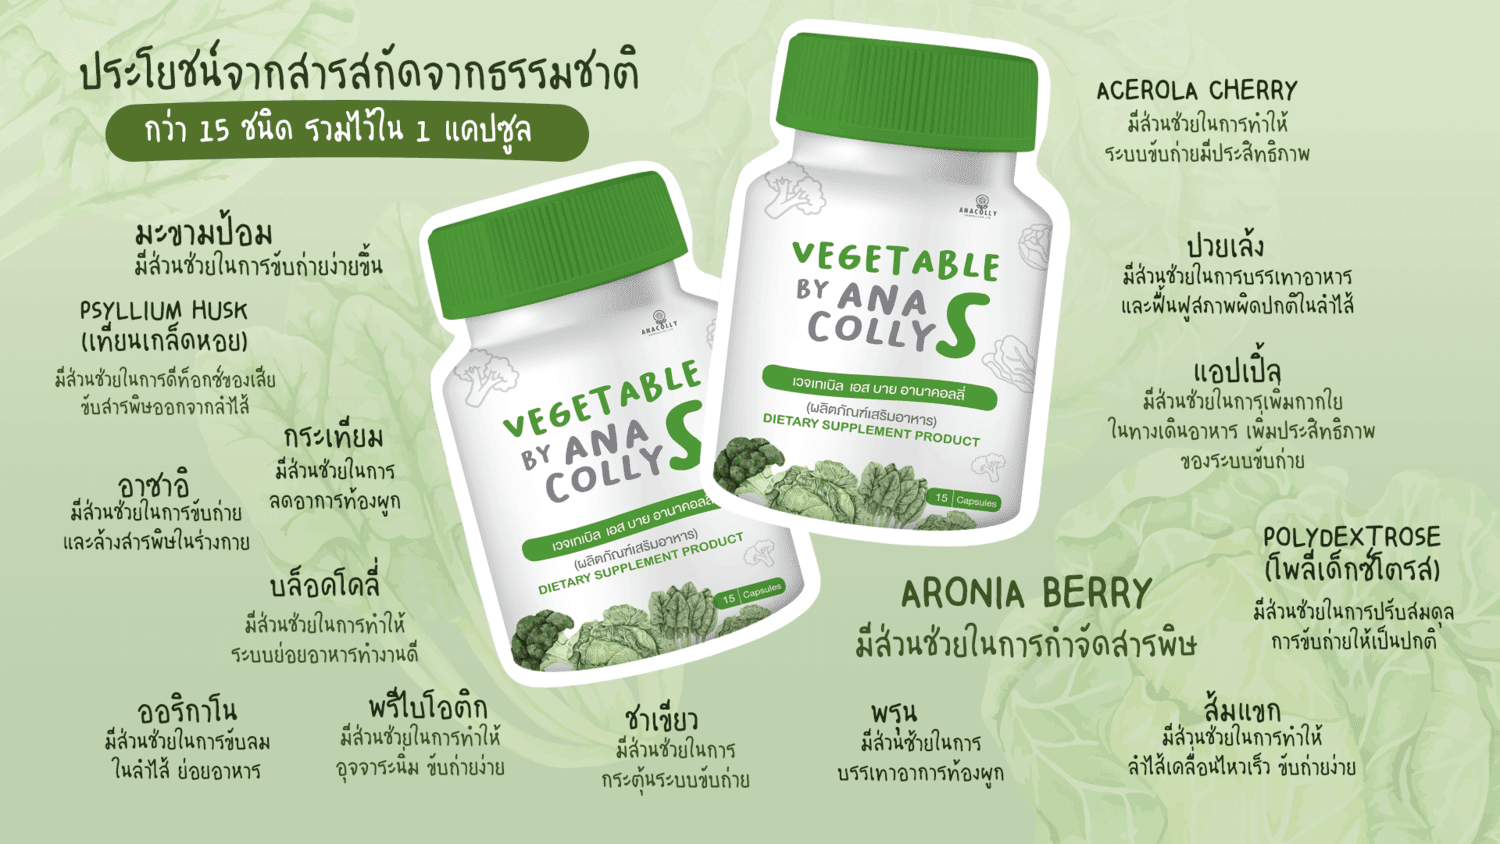 anacolly vegetableS 01